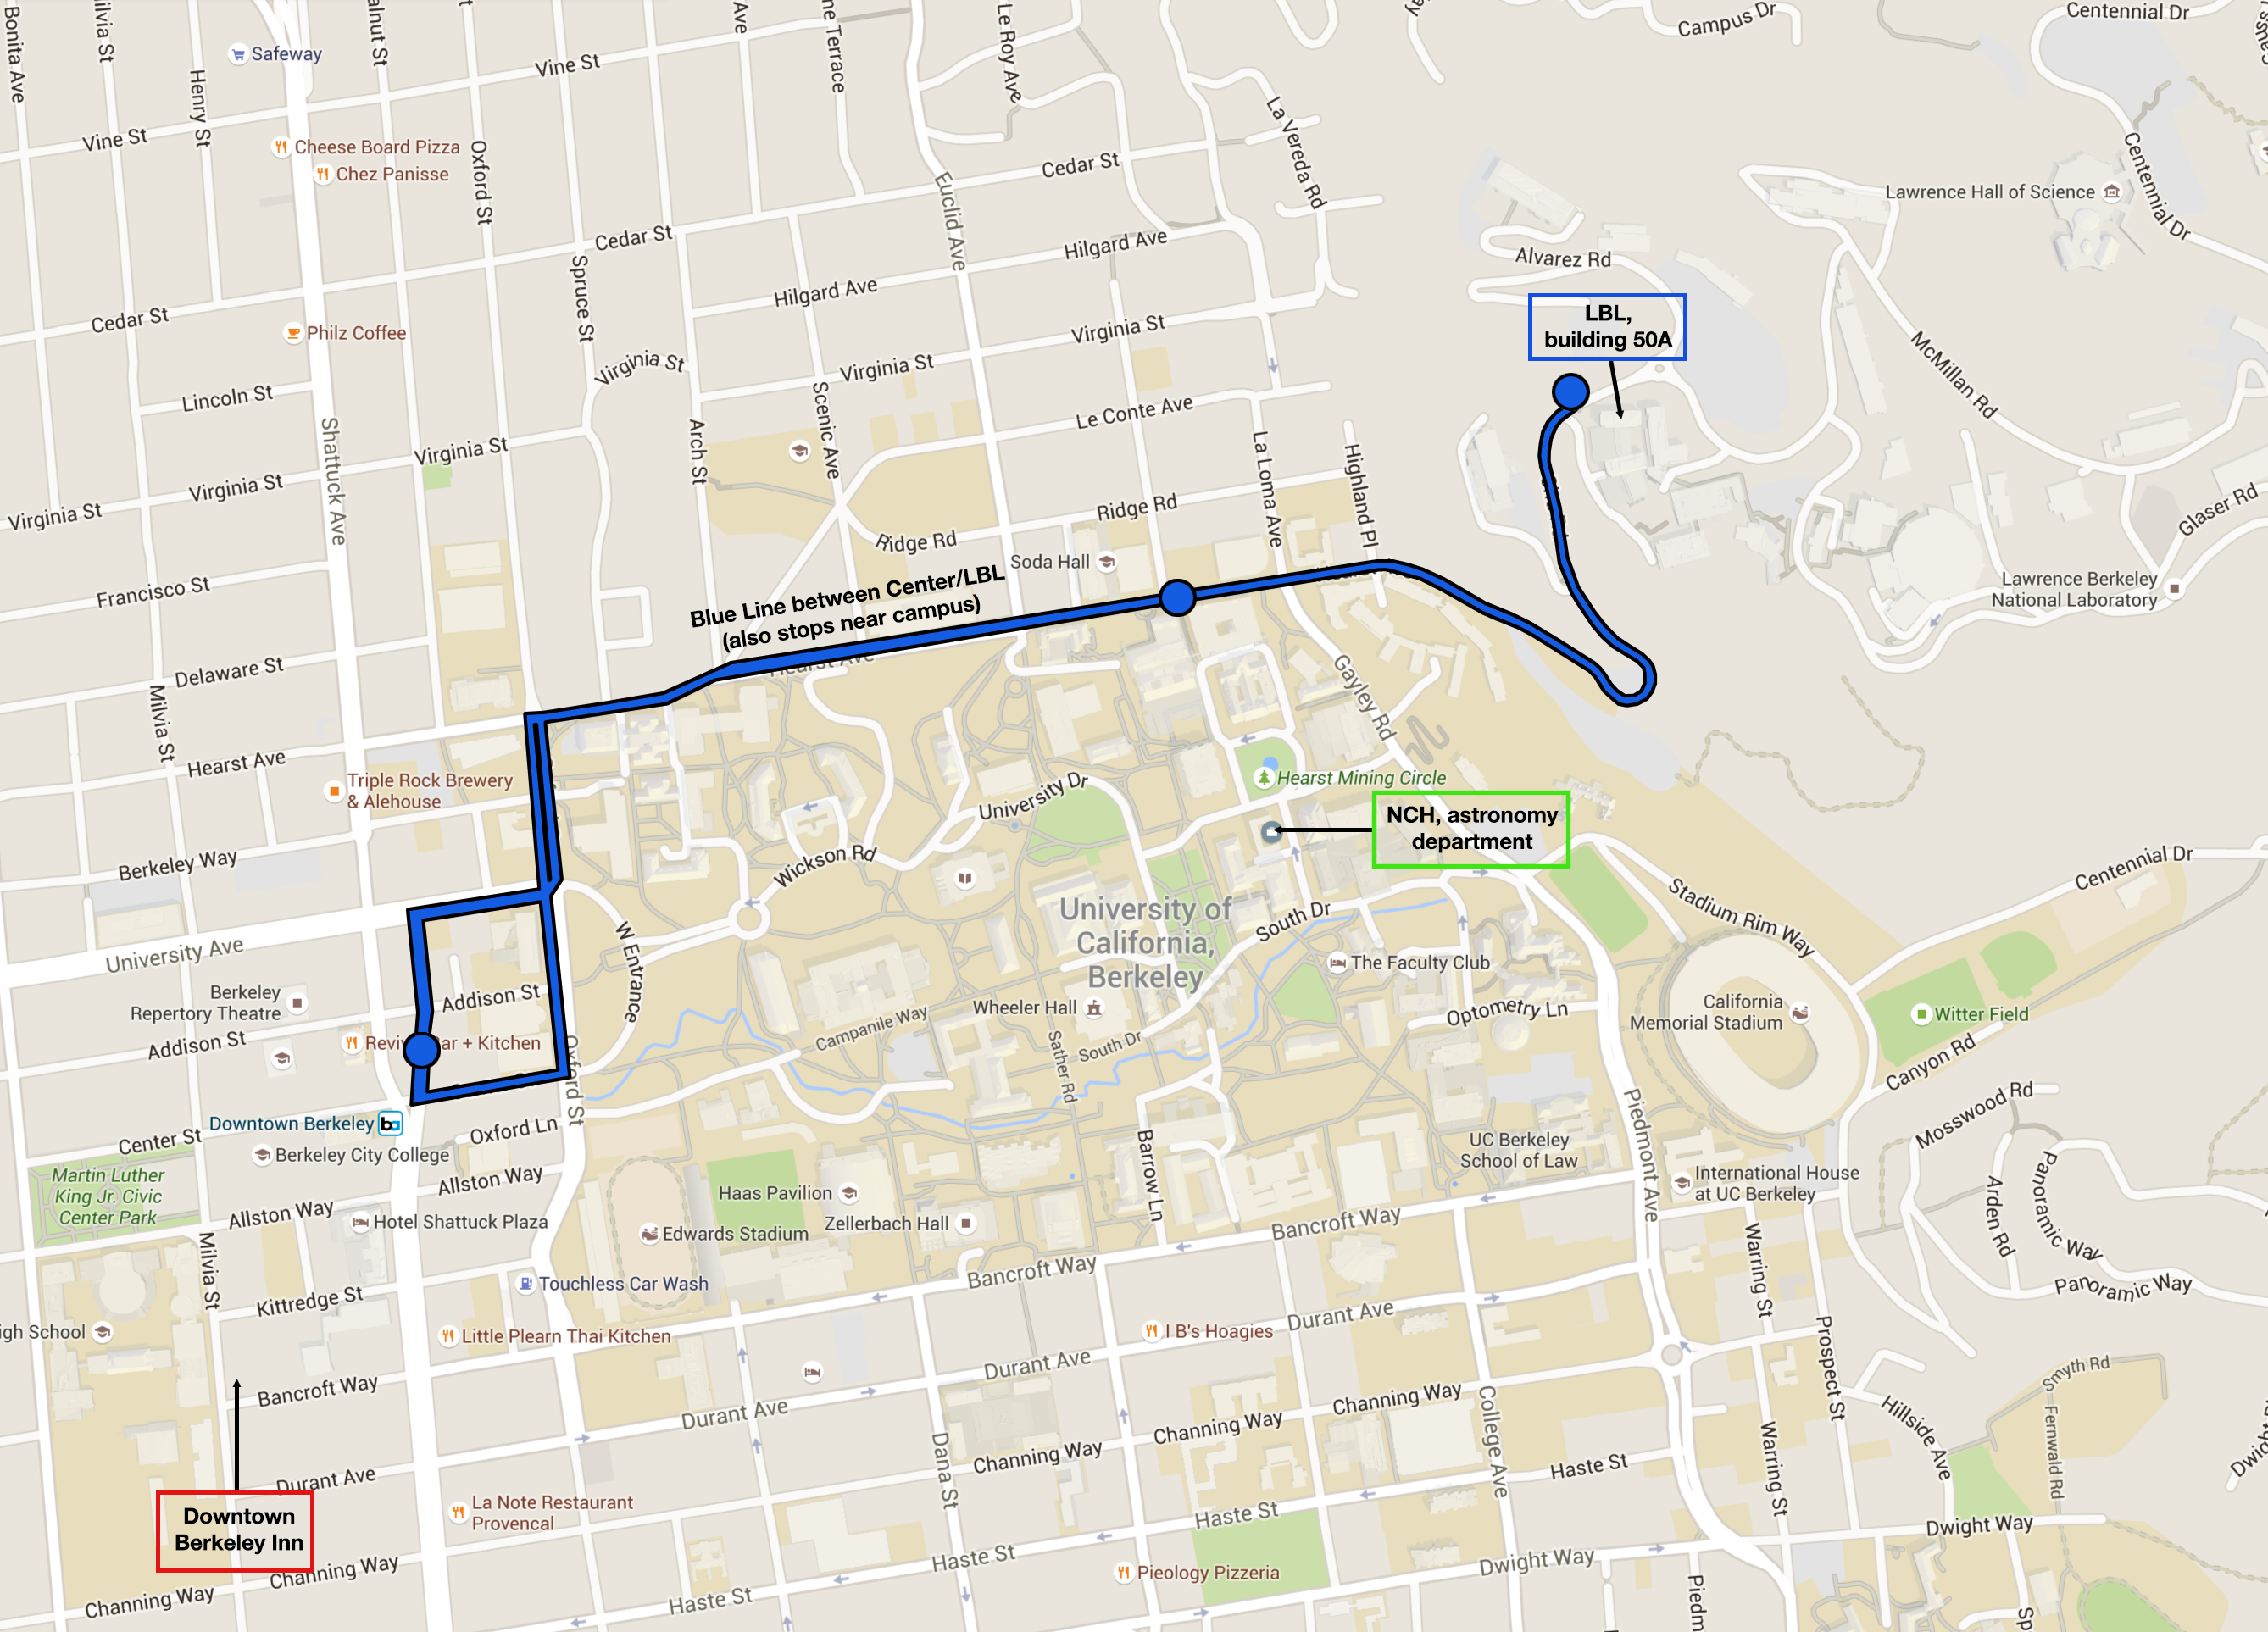 map showing bus route to lbl and campbell hall